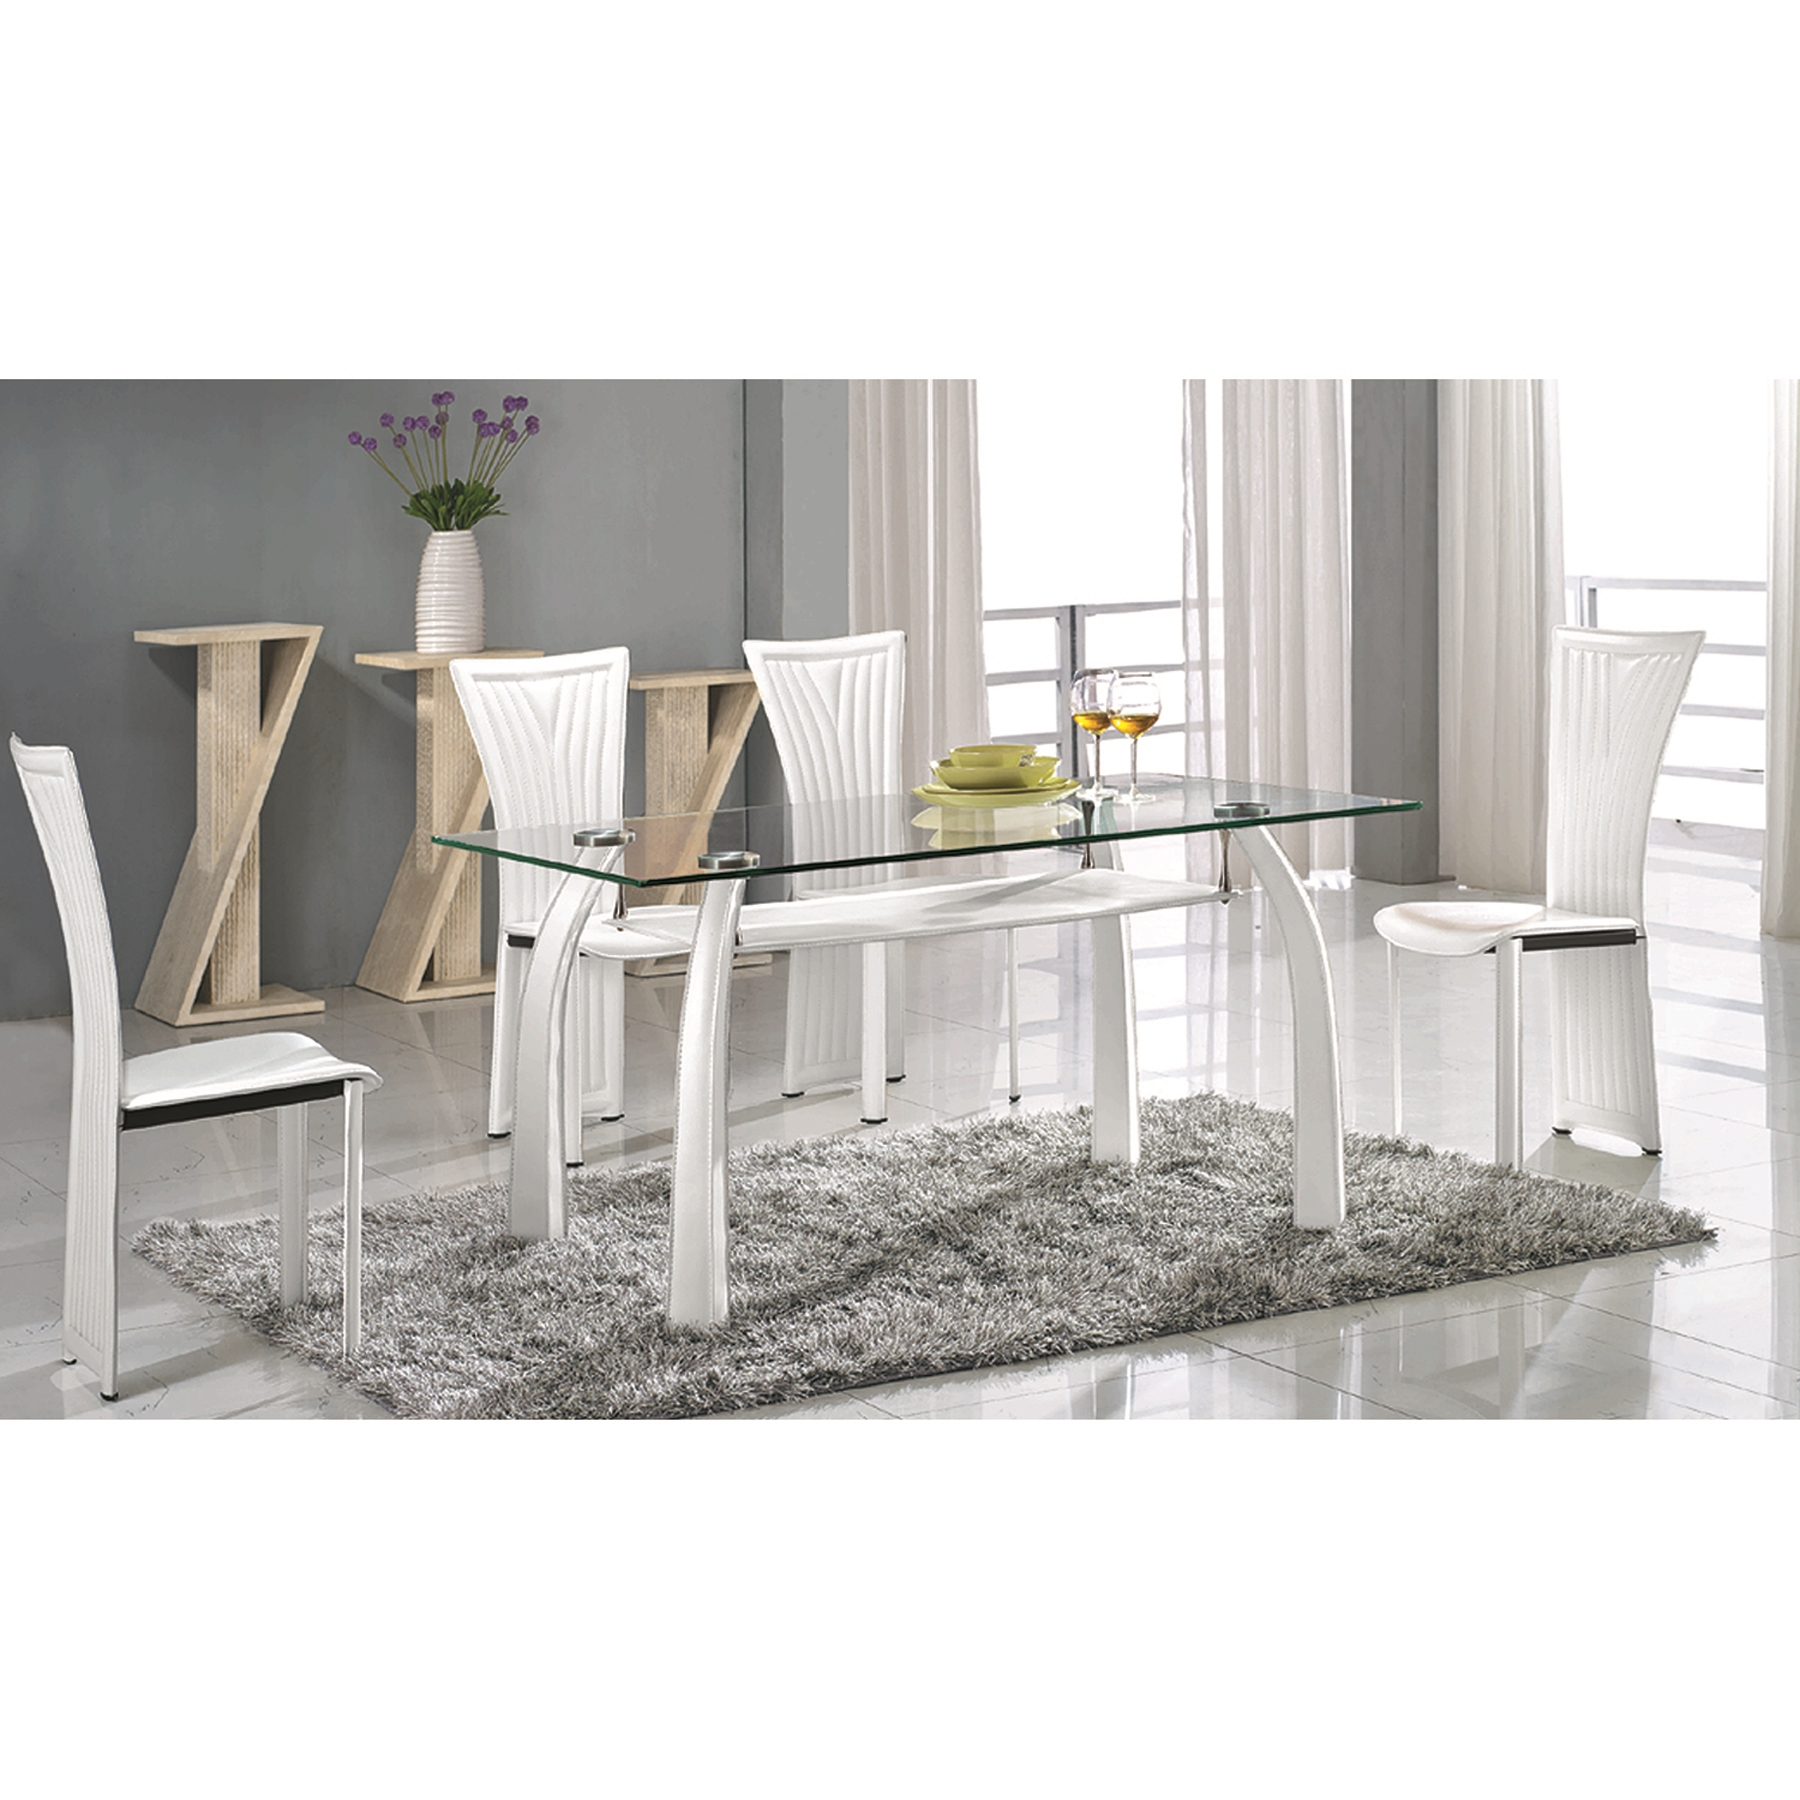 Ramona Dining Table - Clear Glass, White Base